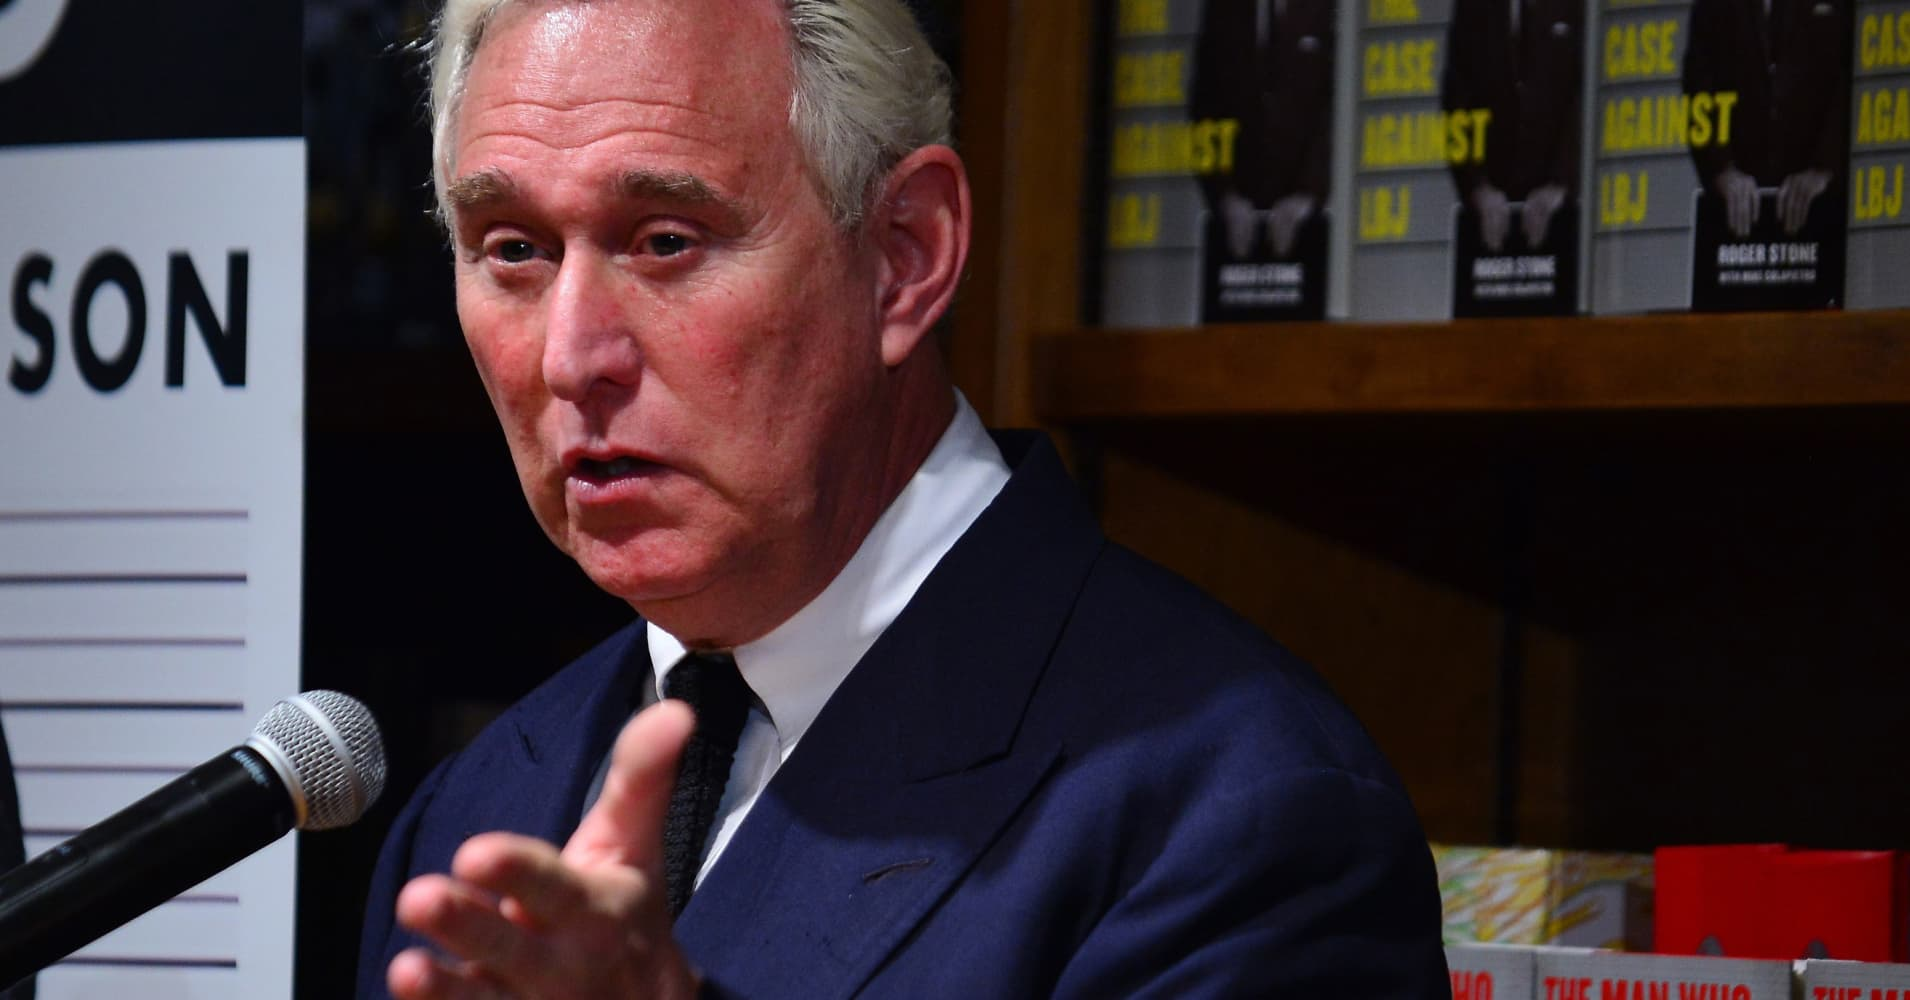 Senate panel contacts Trump adviser Roger Stone in Russia investigation